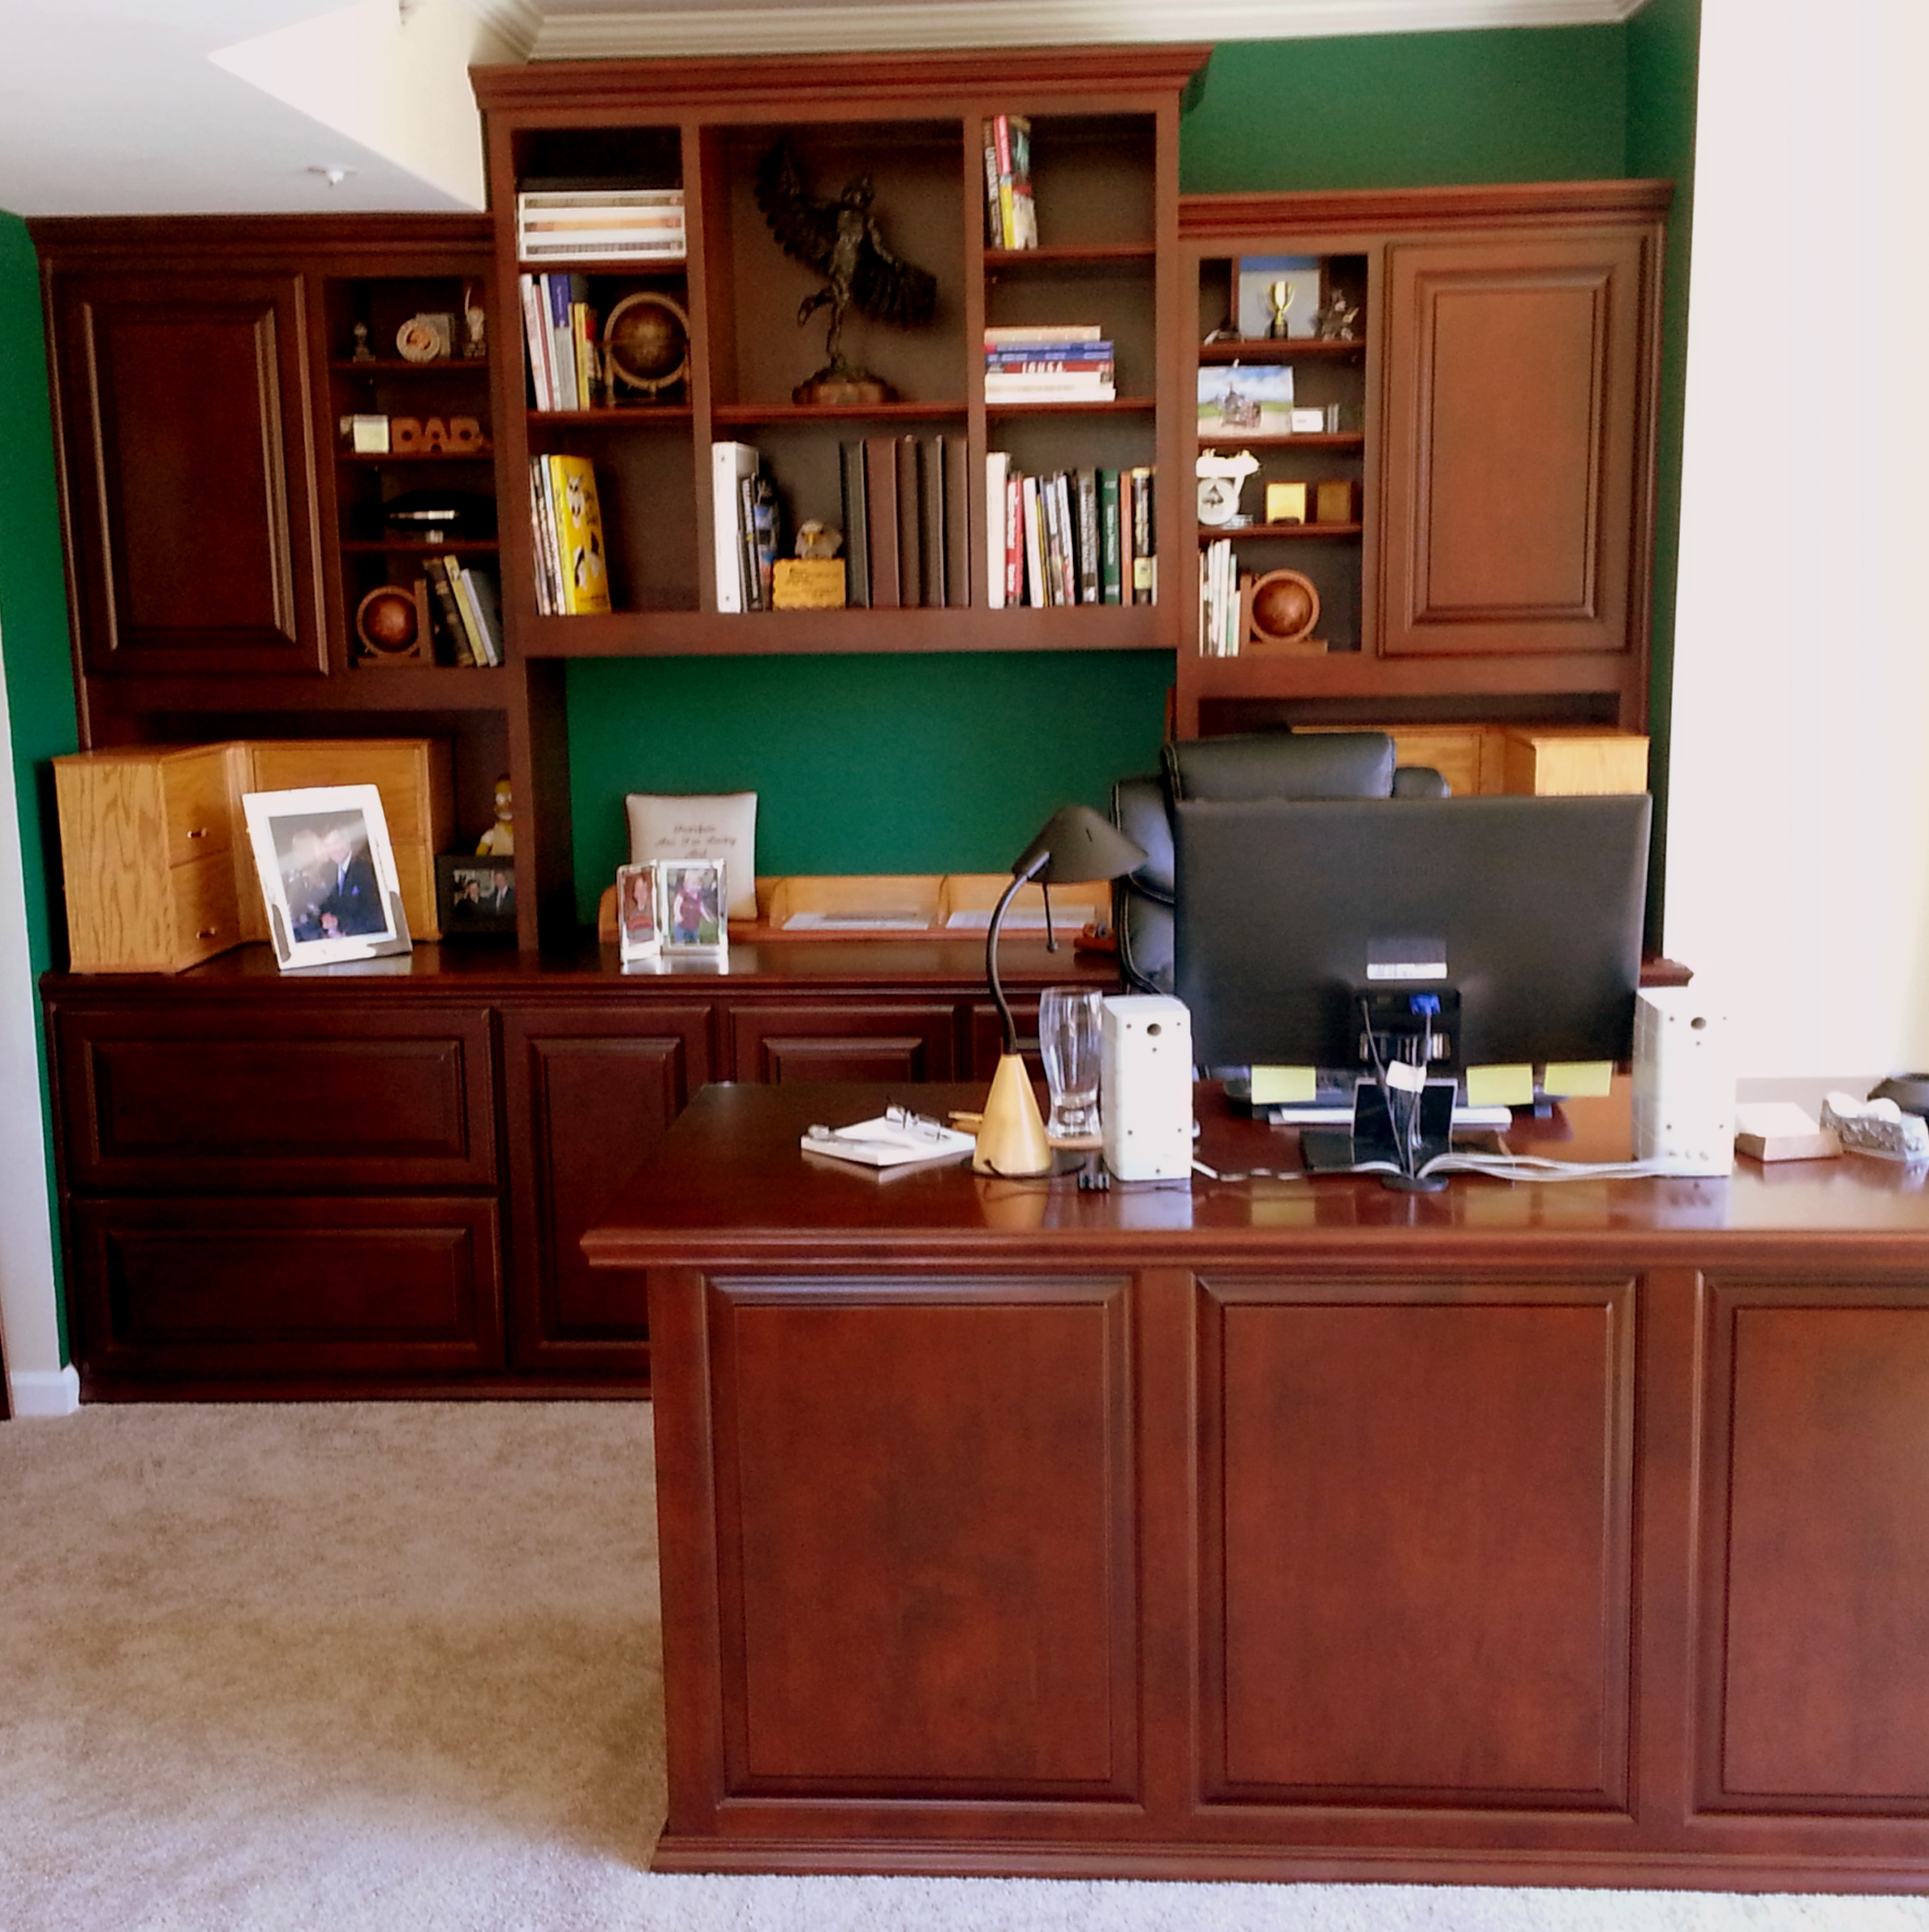 Convert Cabinet To File Drawer Soffit Heights Vary This Custom Design Incorporated Hidden And